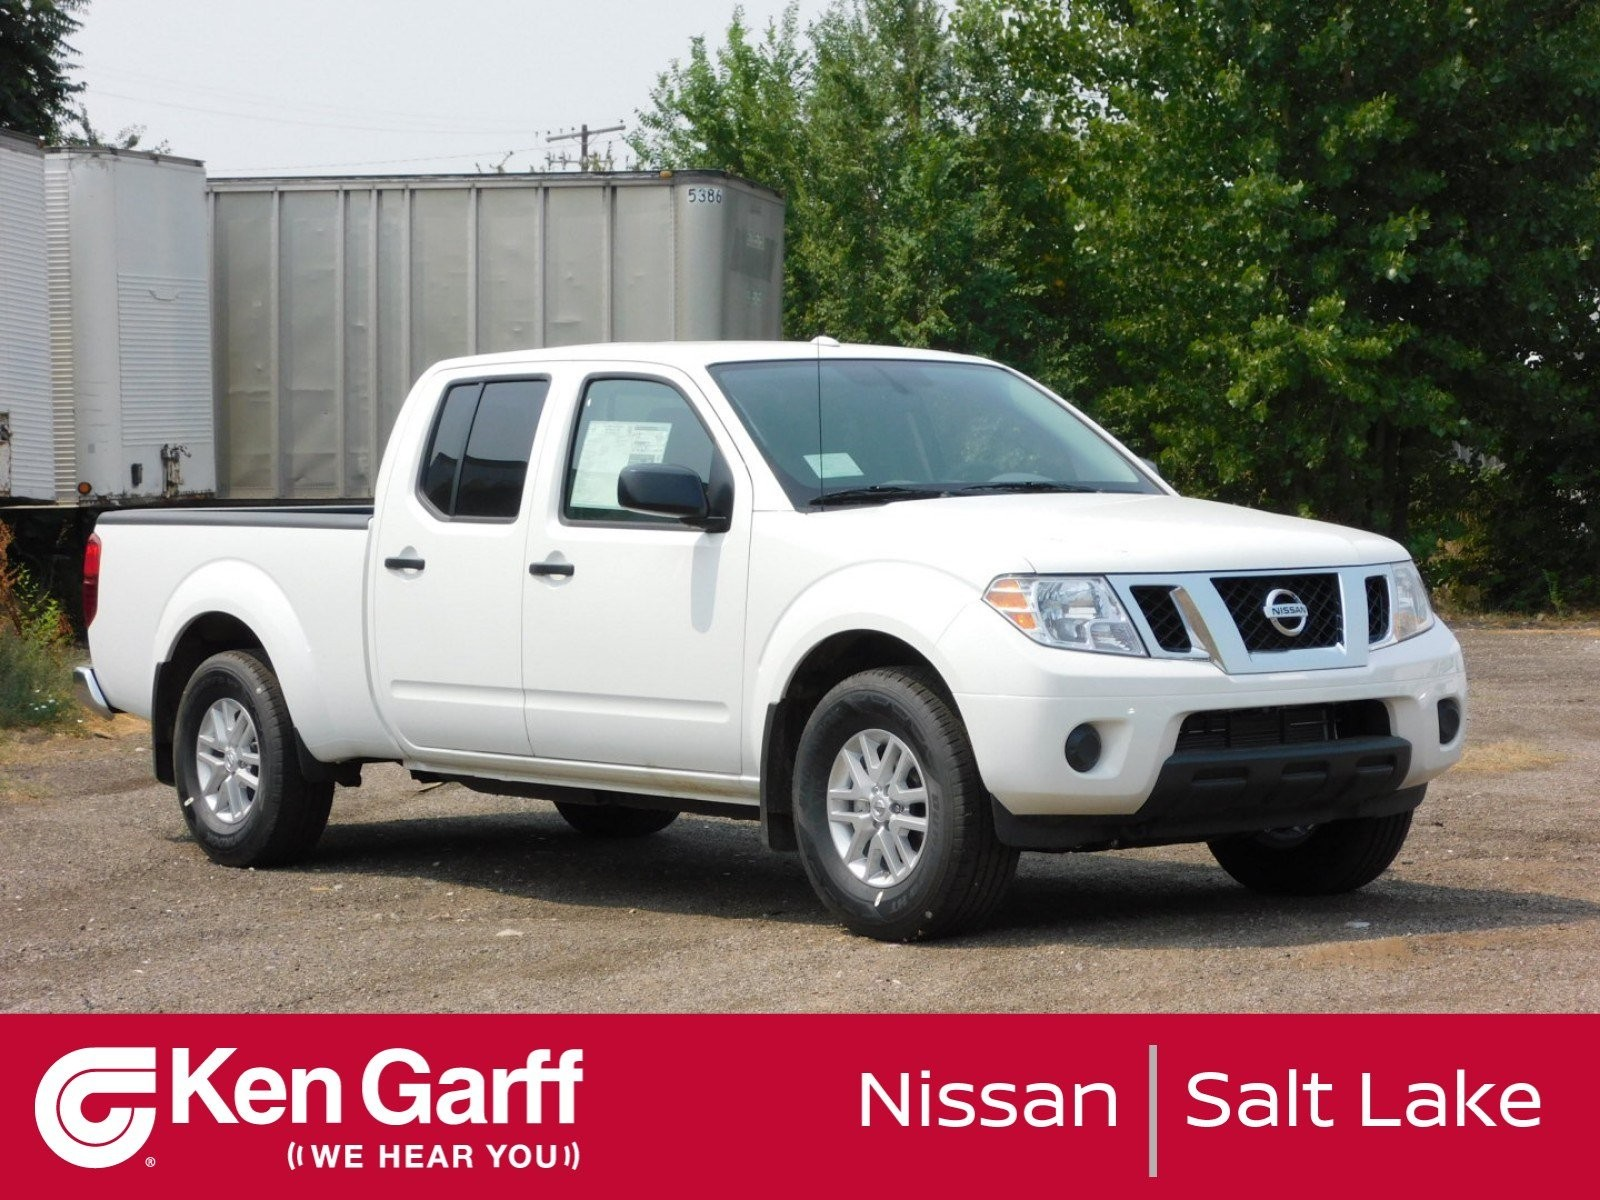 Nissan Truck Parts Diagram New 2018 Nissan Frontier Sv V6 Crew Cab Pickup In Salt Lake City Of Nissan Truck Parts Diagram New 2018 Nissan Frontier S Crew Cab Pickup In orem 2n